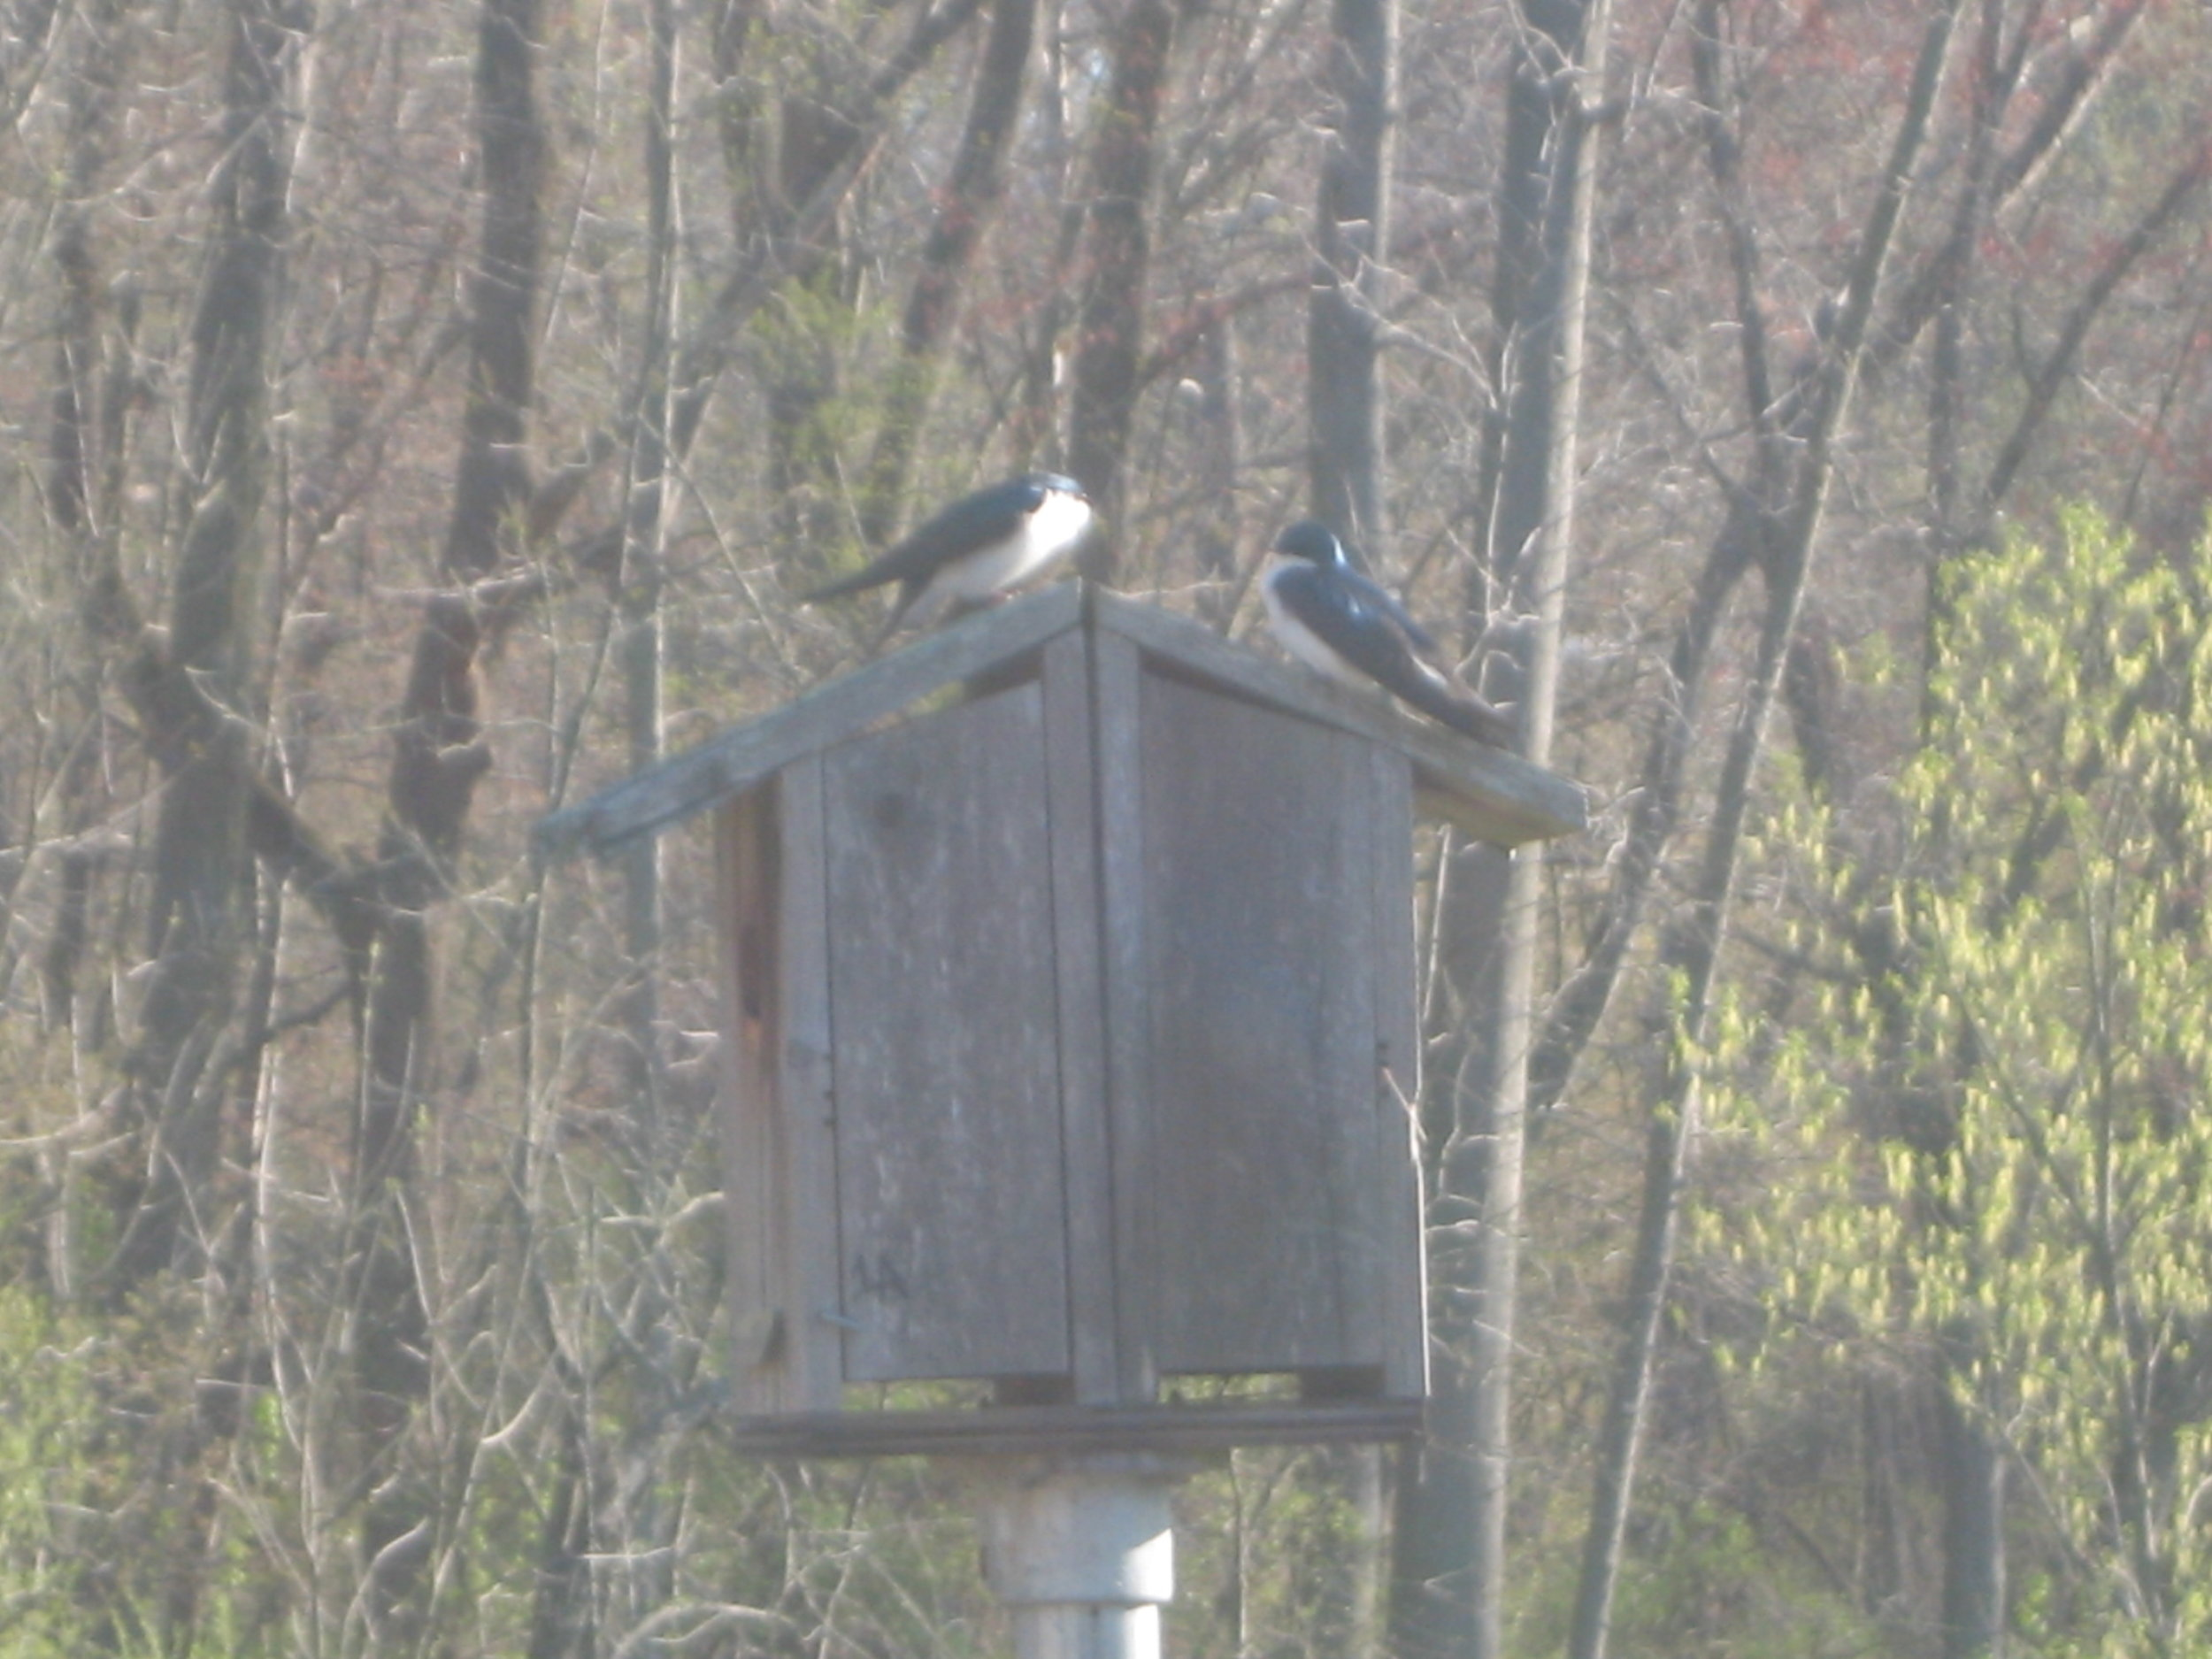 Research Center bird box